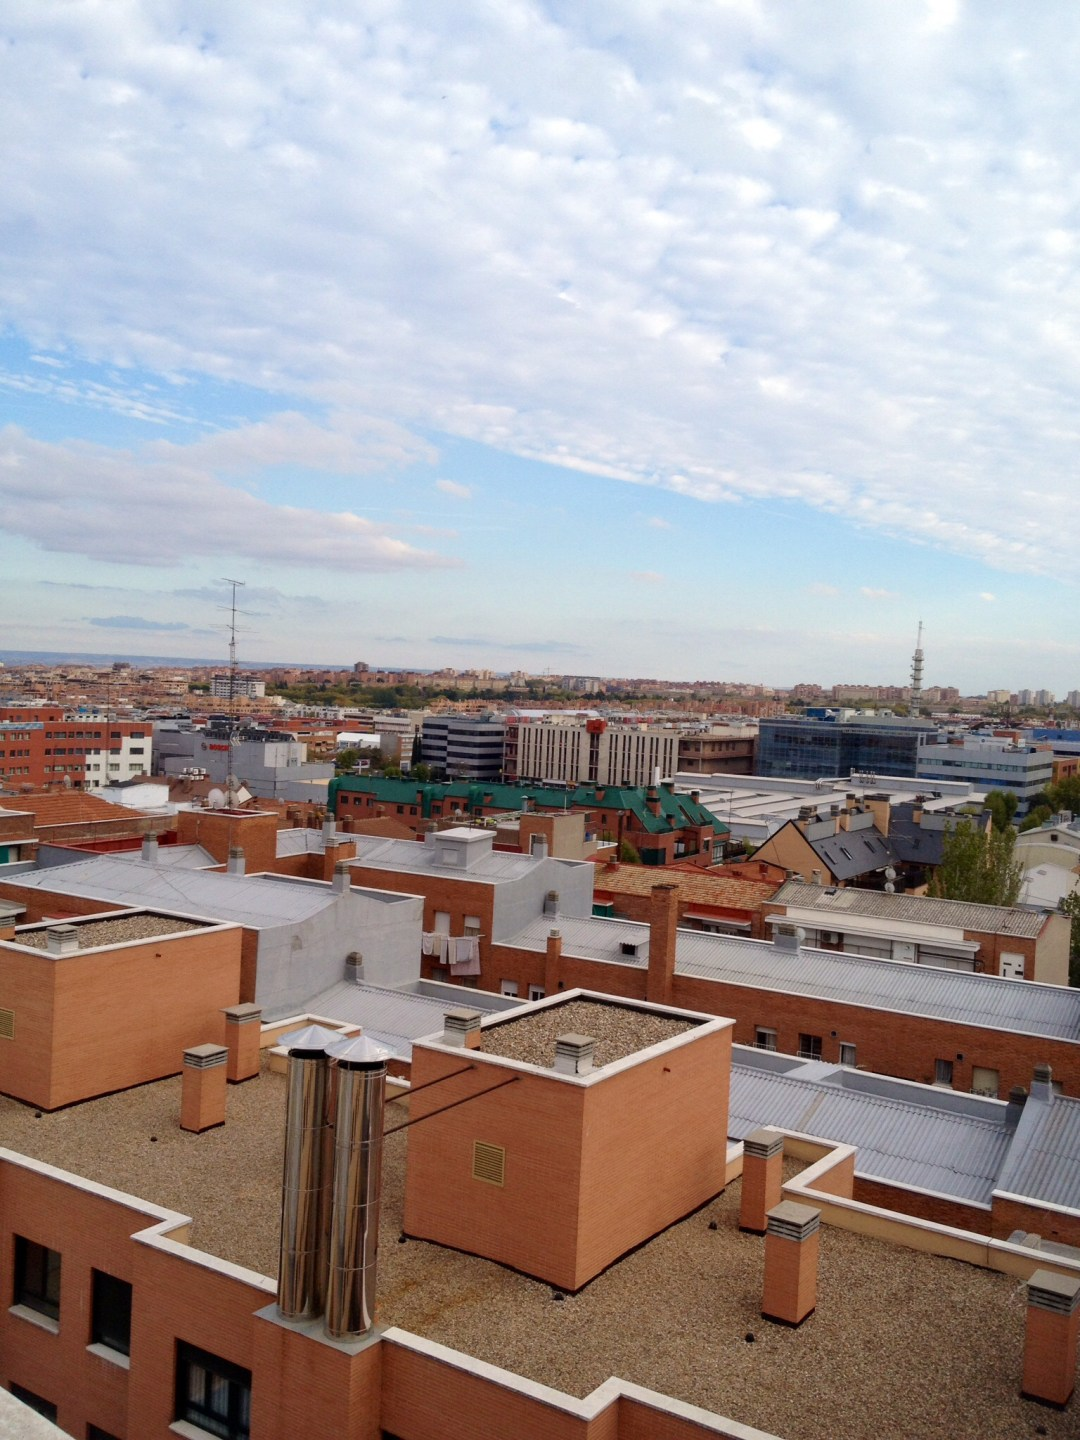 Rooftop view of our Airbnb apartment that l only got to enjoy for one night instead of 4. At least Federico was able to stay for 3 nights, and even though he offered another night, we couldn't take him up on his offer :-(